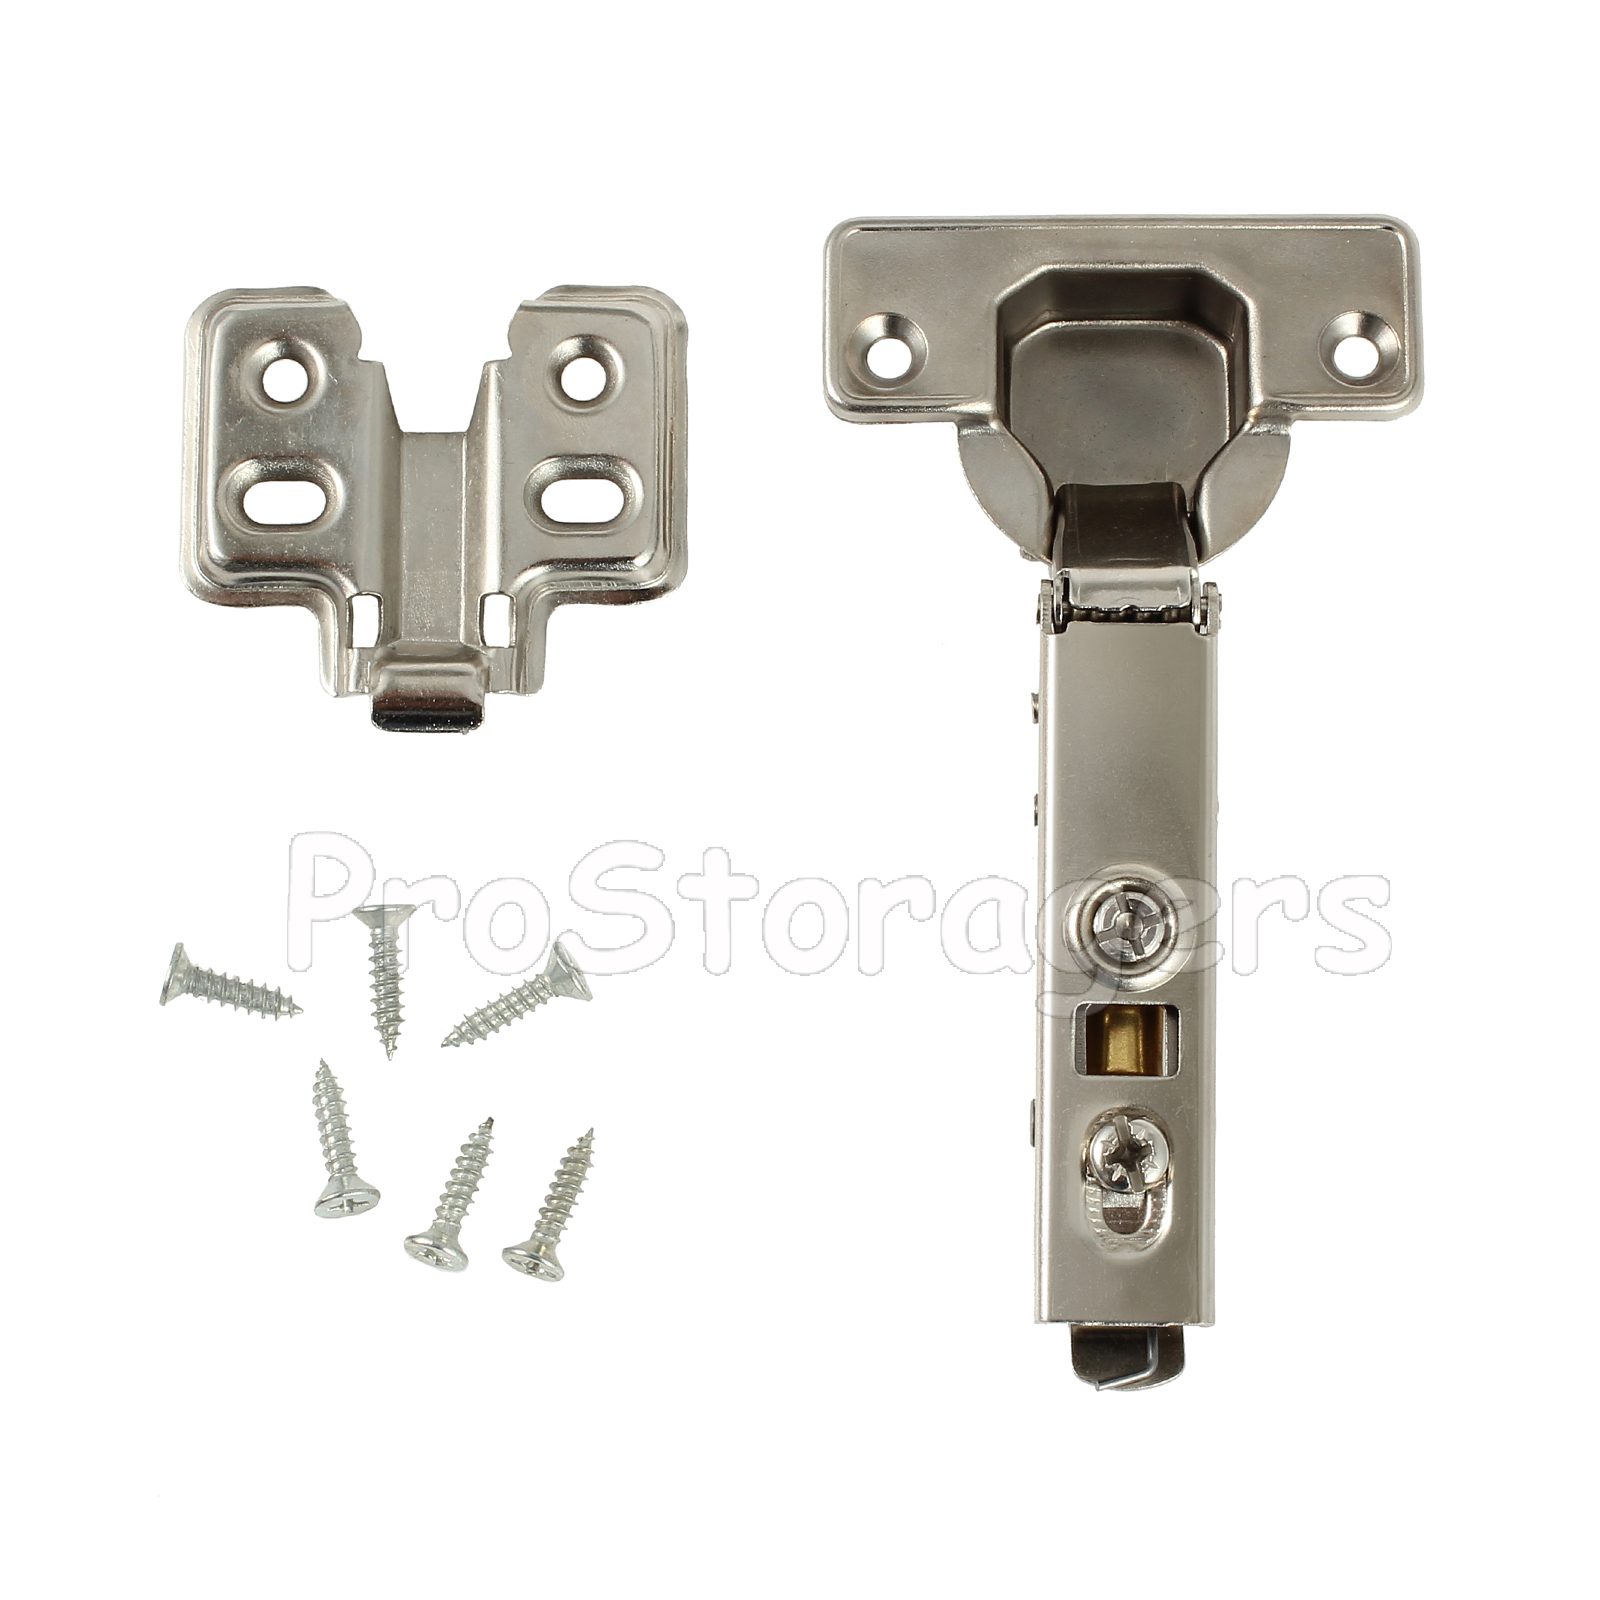 Hydraulic Hinges For Kitchen Cabinets 20pcs Kitchen Cabinet Door Hinge Self Closing Hydraulic